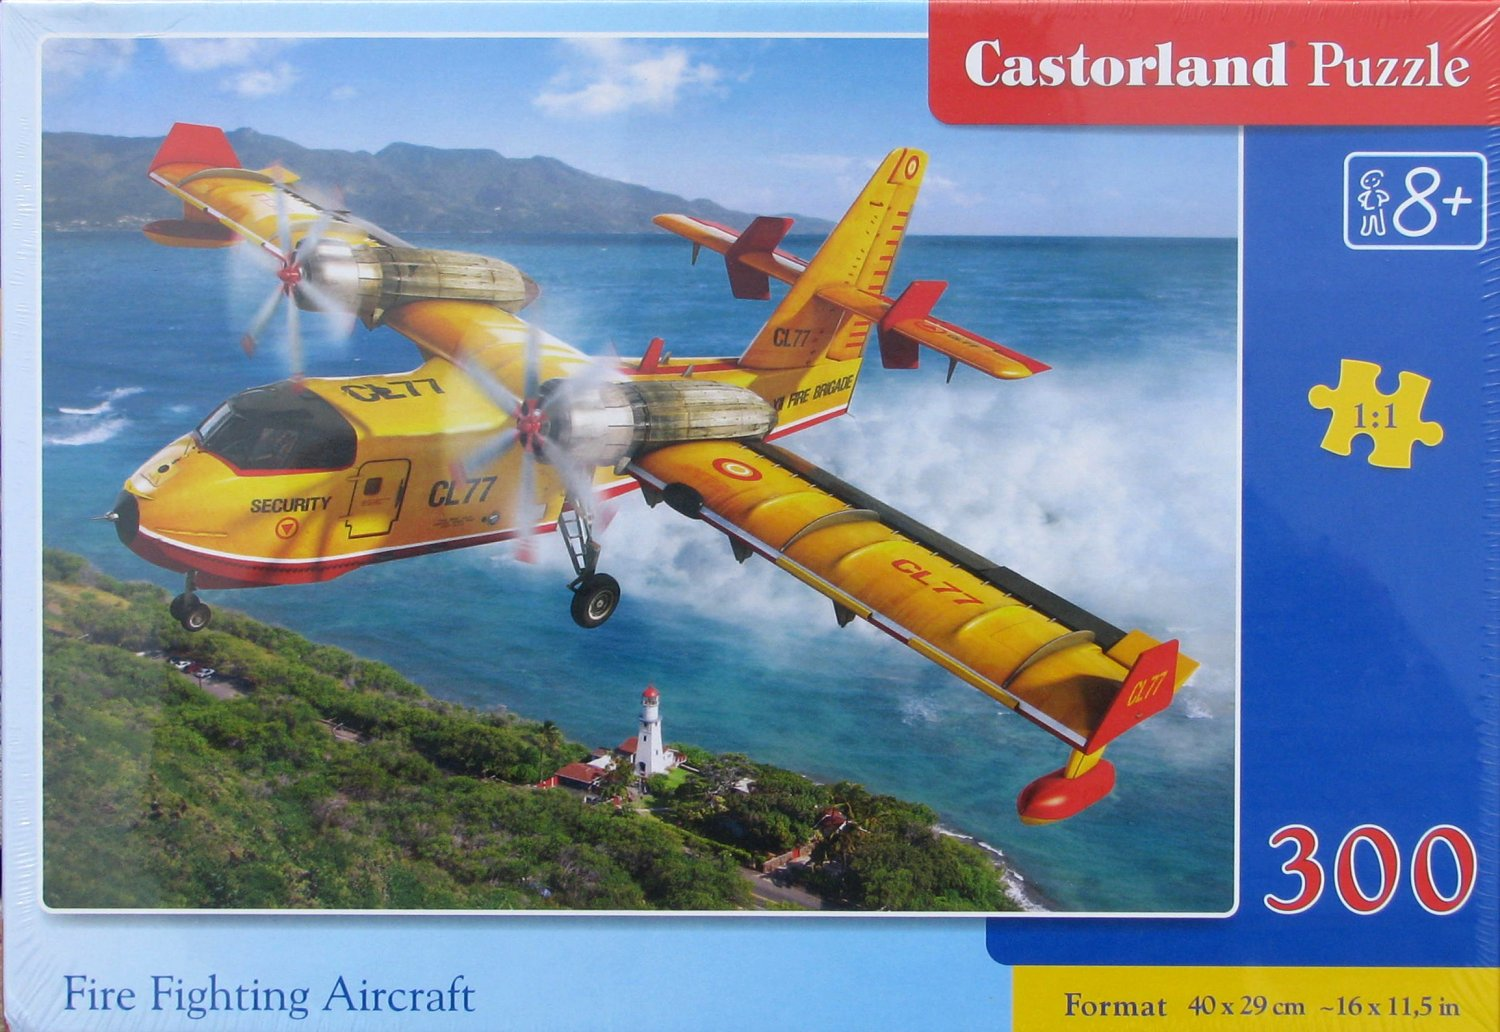 Castorland FIRE FIGHTING AIRCRAFT 300 pc Jigsaw Puzzle